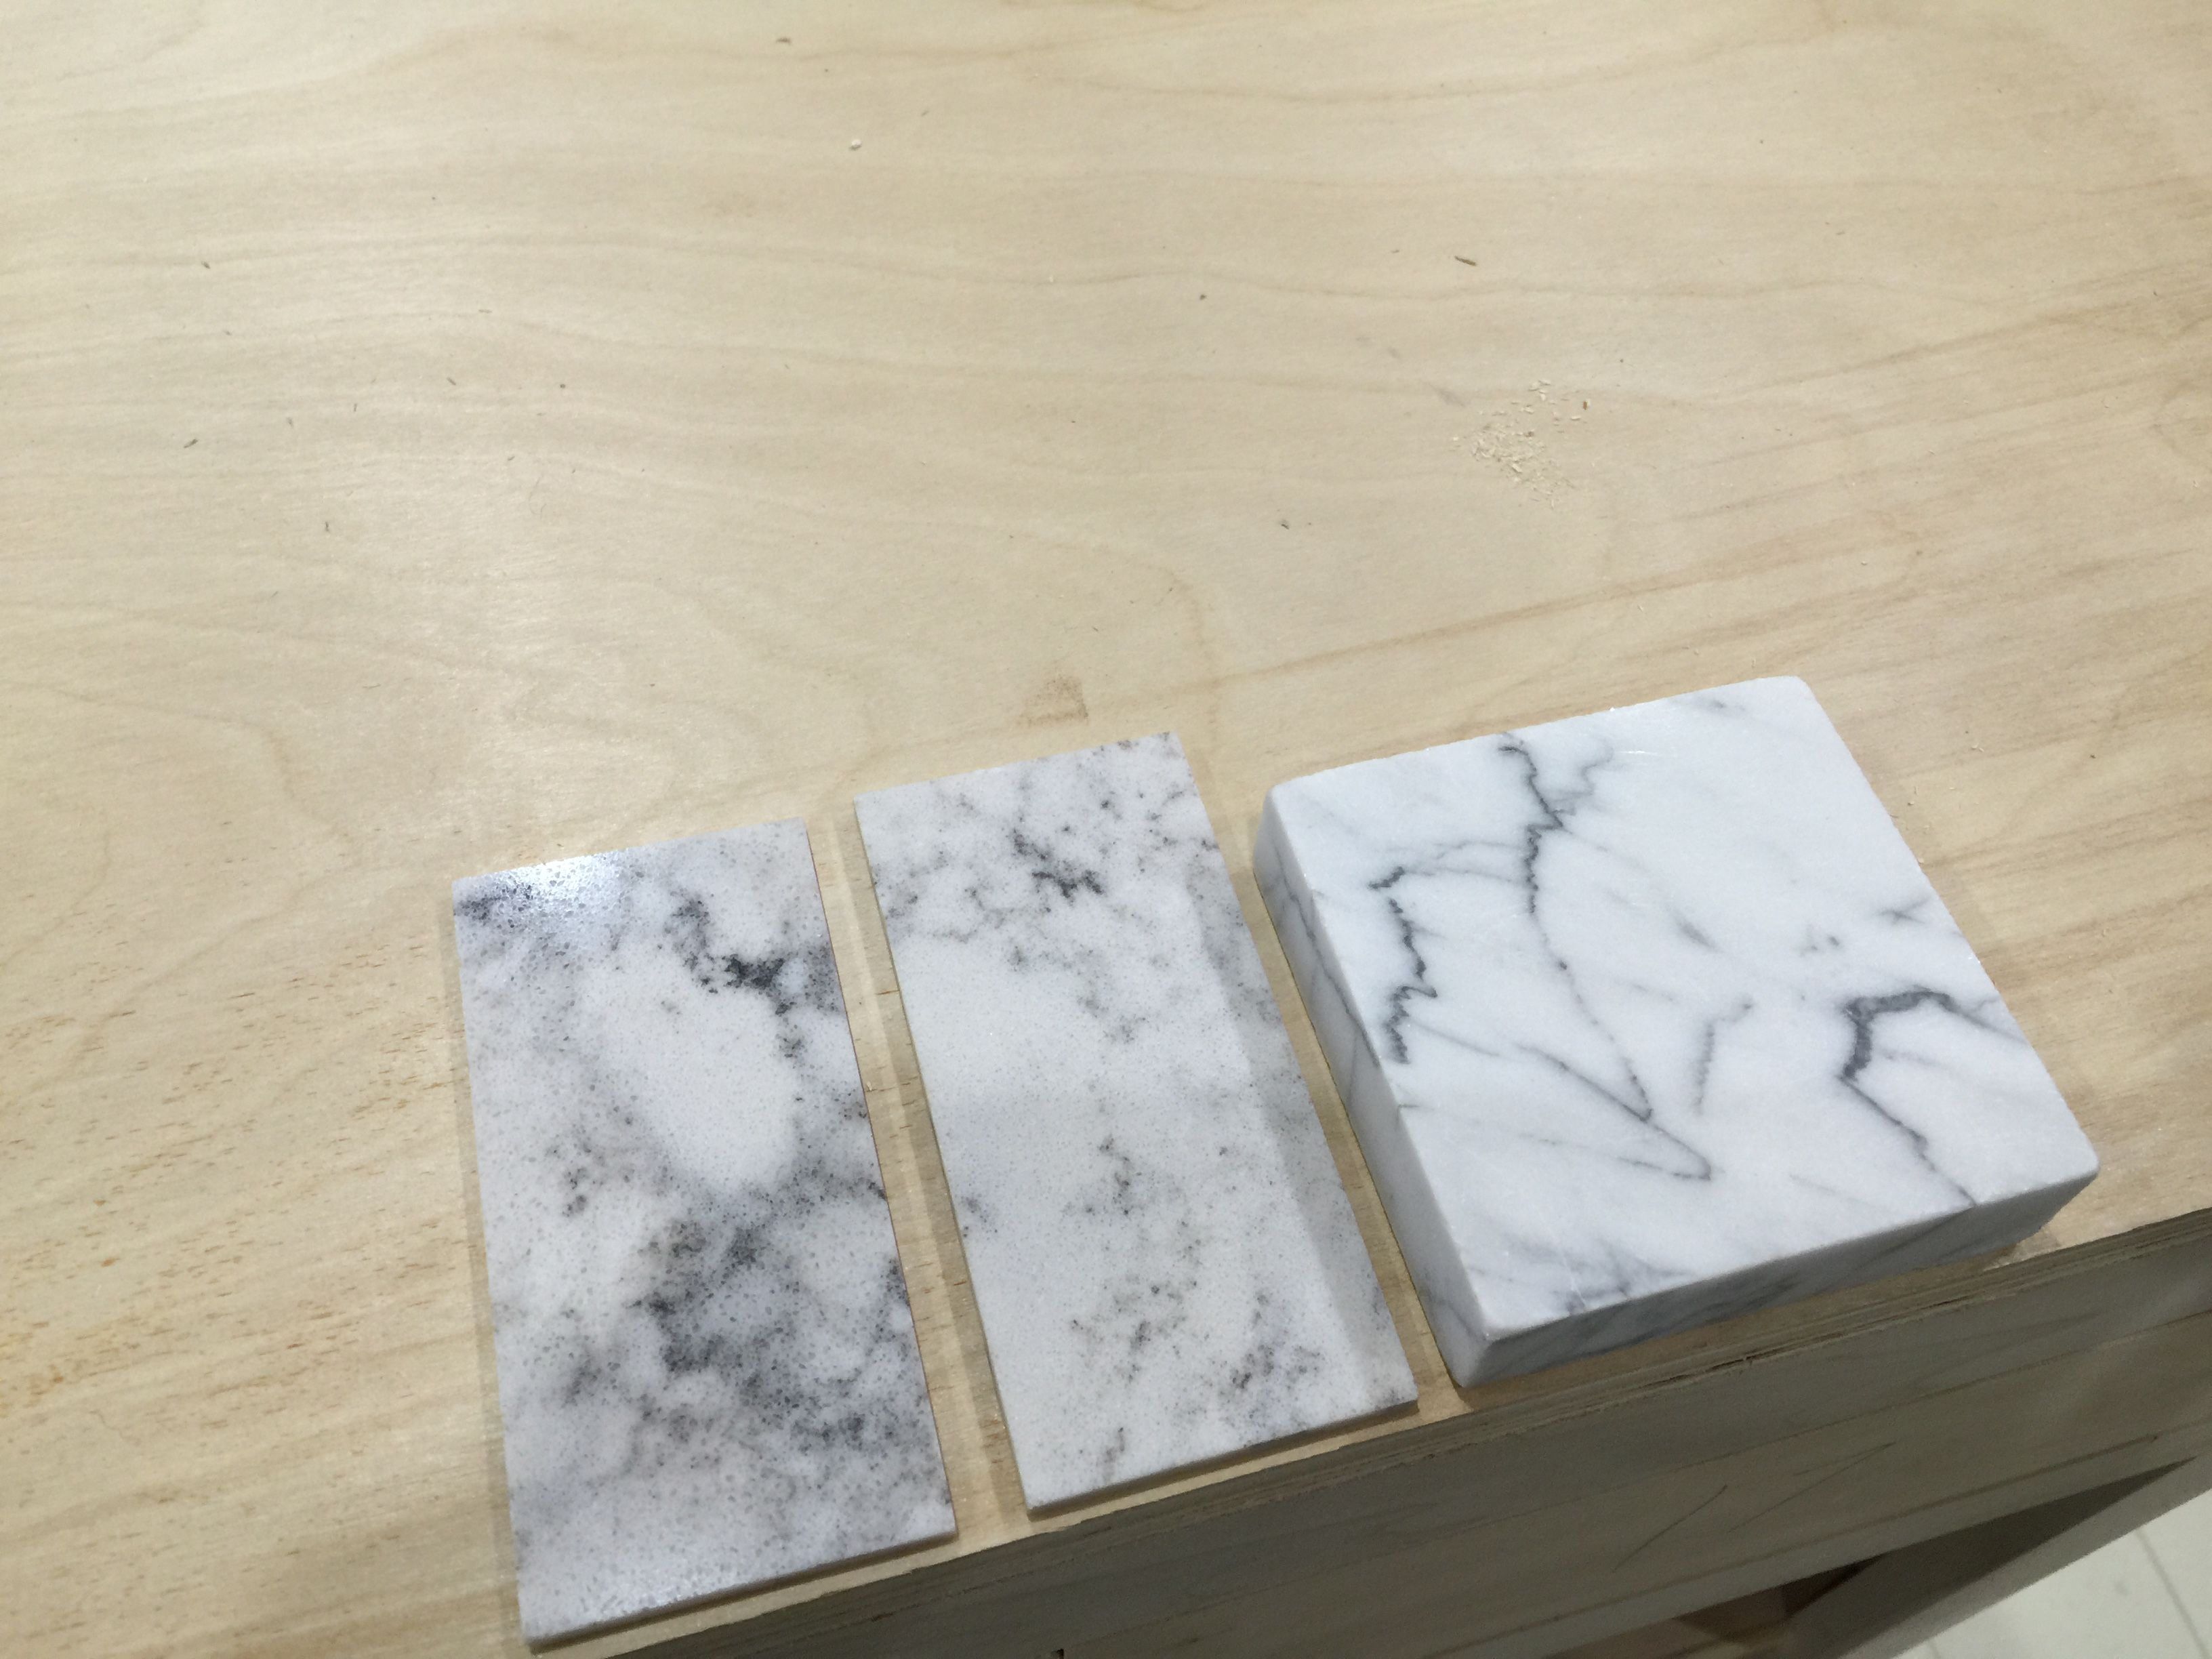 Merveilleux Lyra Silestone Is Closest To Carrara Marble And More Affordable.